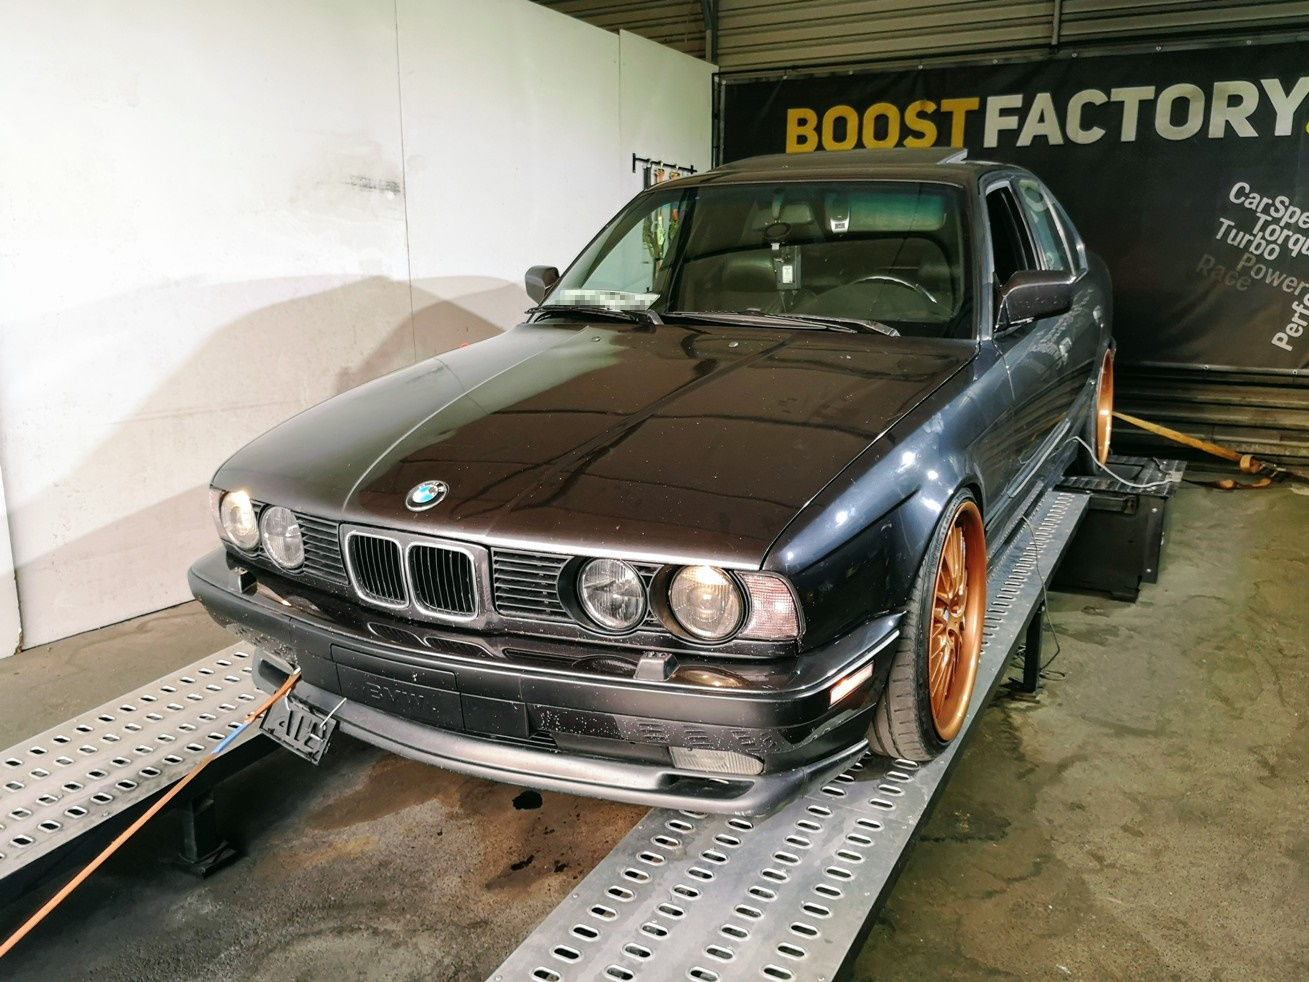 BMW E34 525i 192KM >> 197KM 248Nm